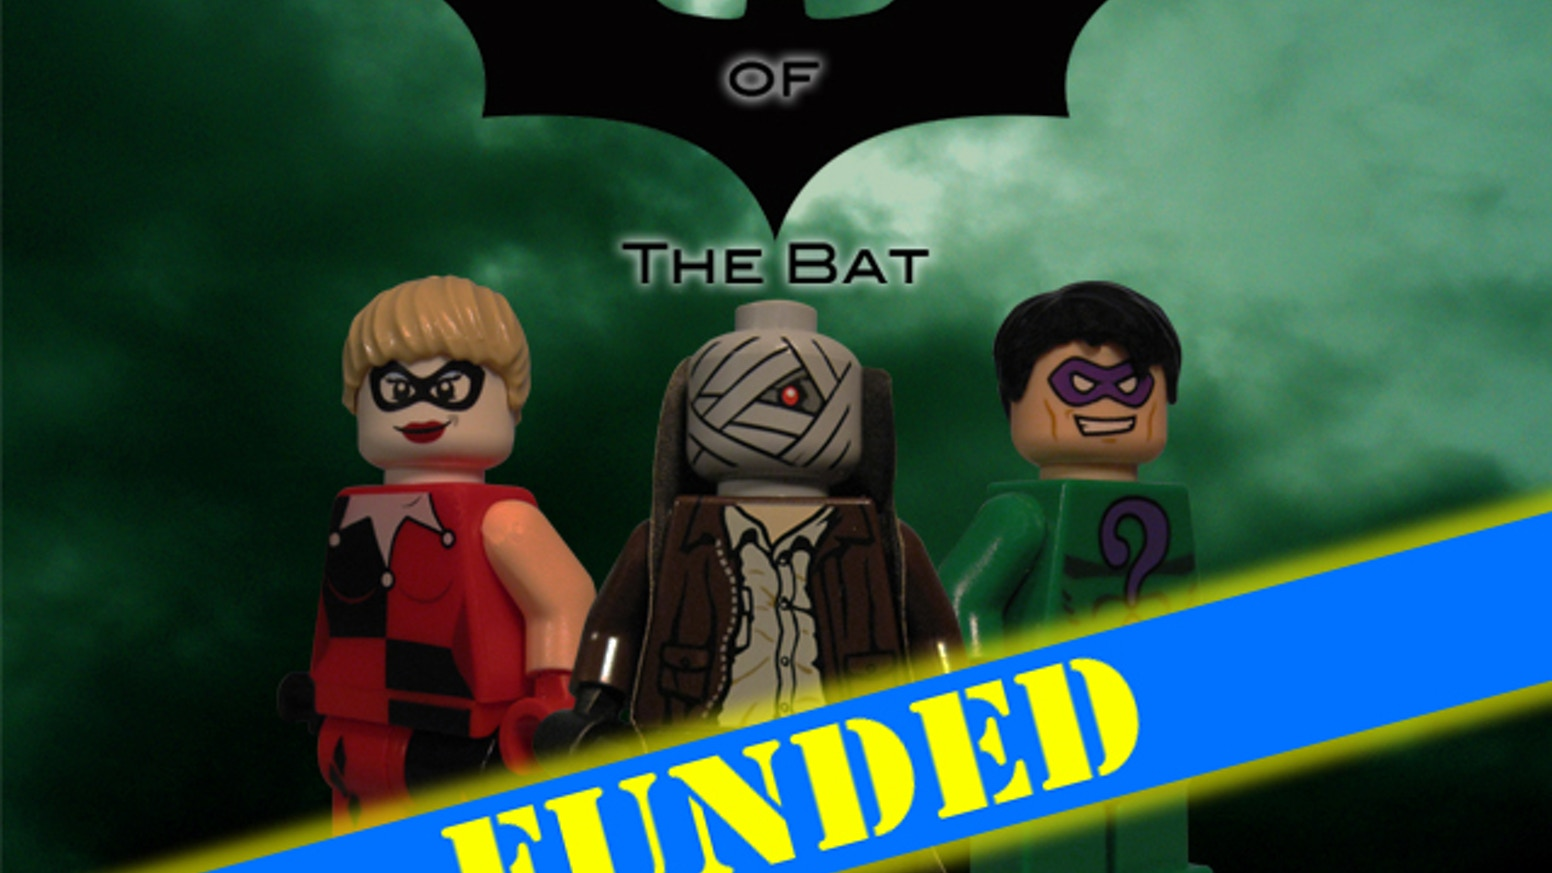 A Batman fan film that will use stop-motion animation to tell the story of The Caped Crusader after the events of Gotham Knights.